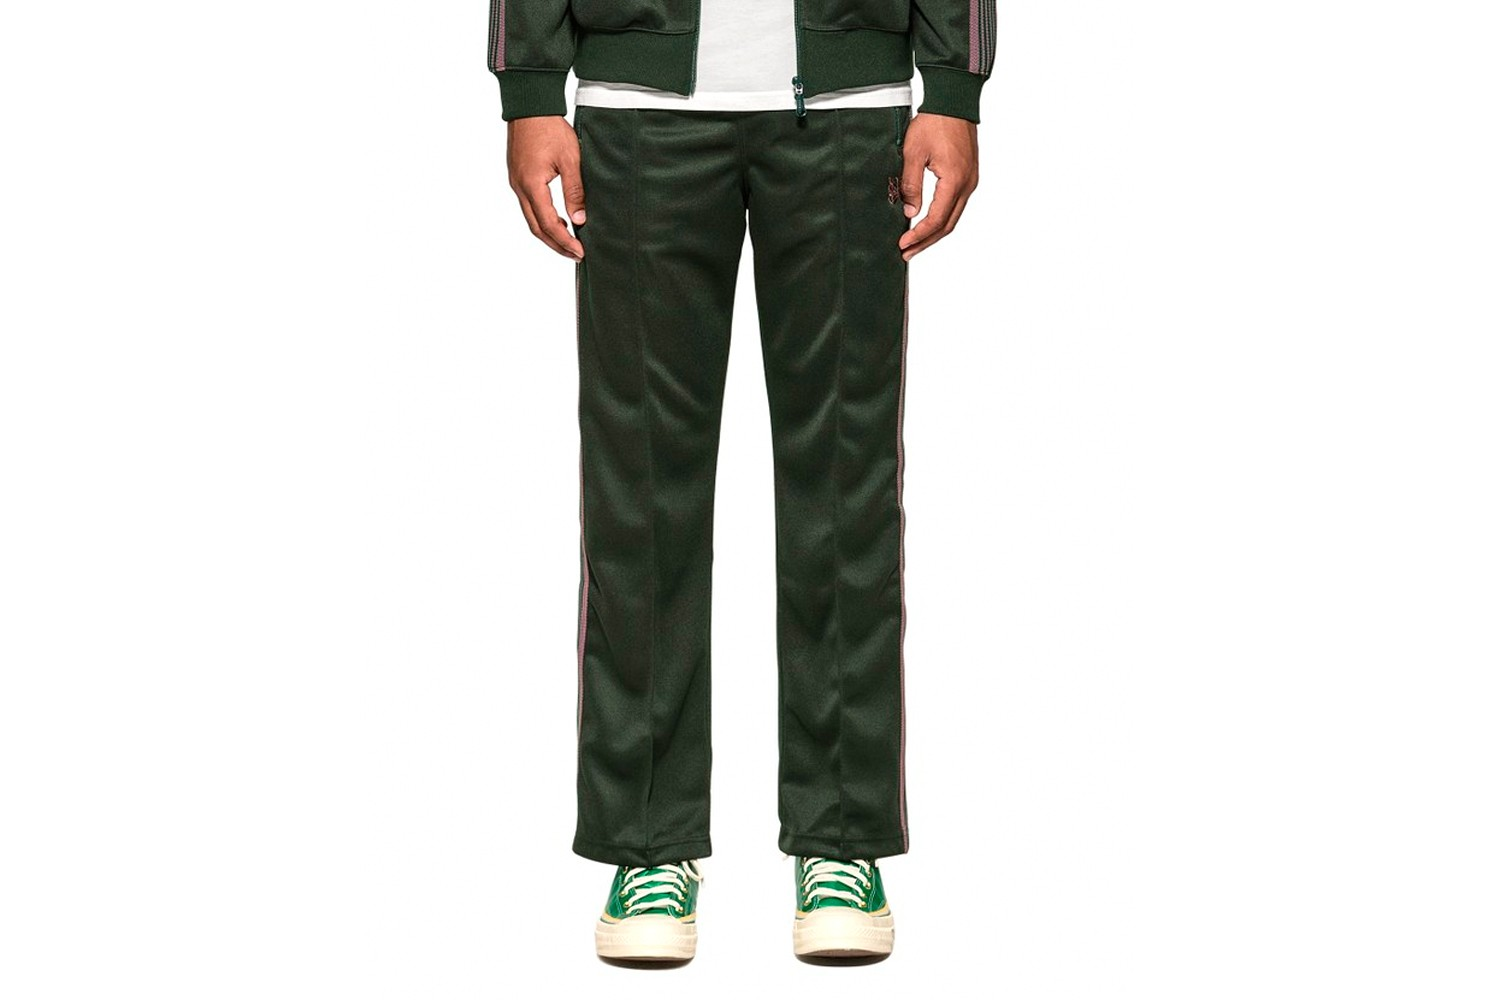 Best St. Patricks Day Items 2020 MATCHESFASHION LUISAVIAROMA SSENSE The Webster HBX Y/Project Homme Plissé Issey Miyake Prada Fendi AMBUSH Balenciaga SHOES 53045 NEEDLES HUMAN MADE Billionaire Boys Club Ghost ICECREAM